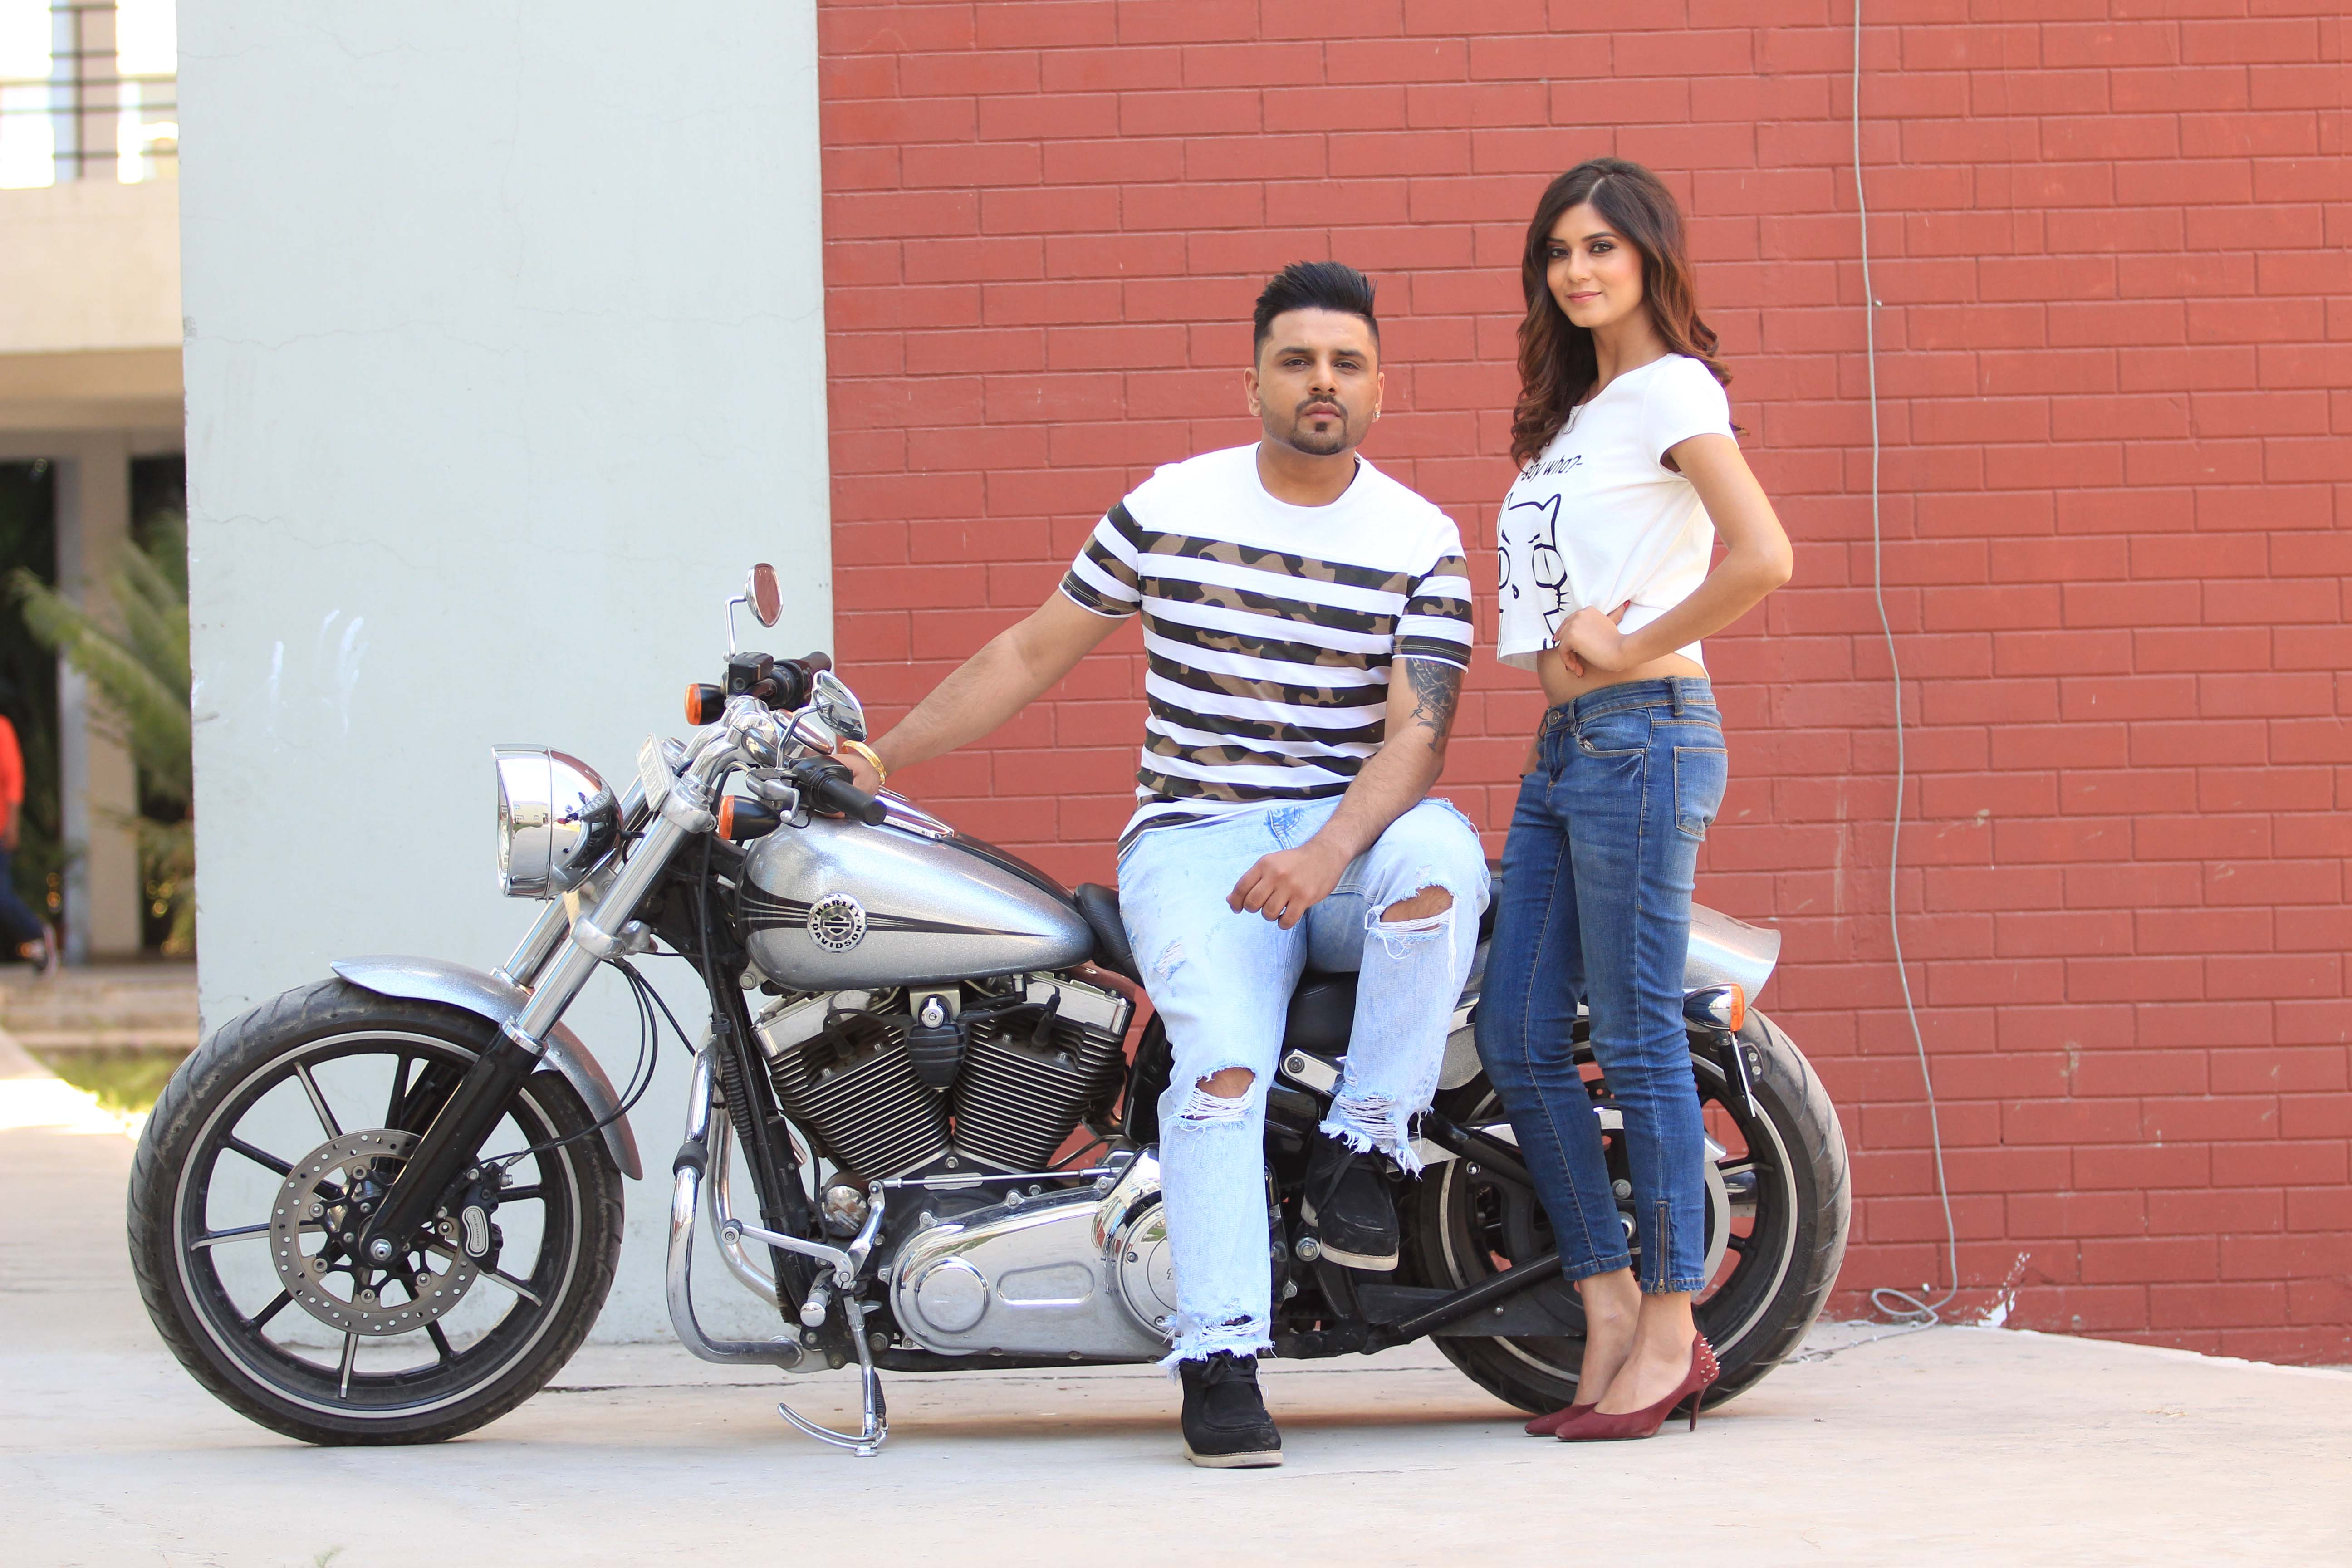 'Money Aujla' is here with his latest single 'Lecture 2'. The Bhangra beats of the song are extremely catchy and addictive.